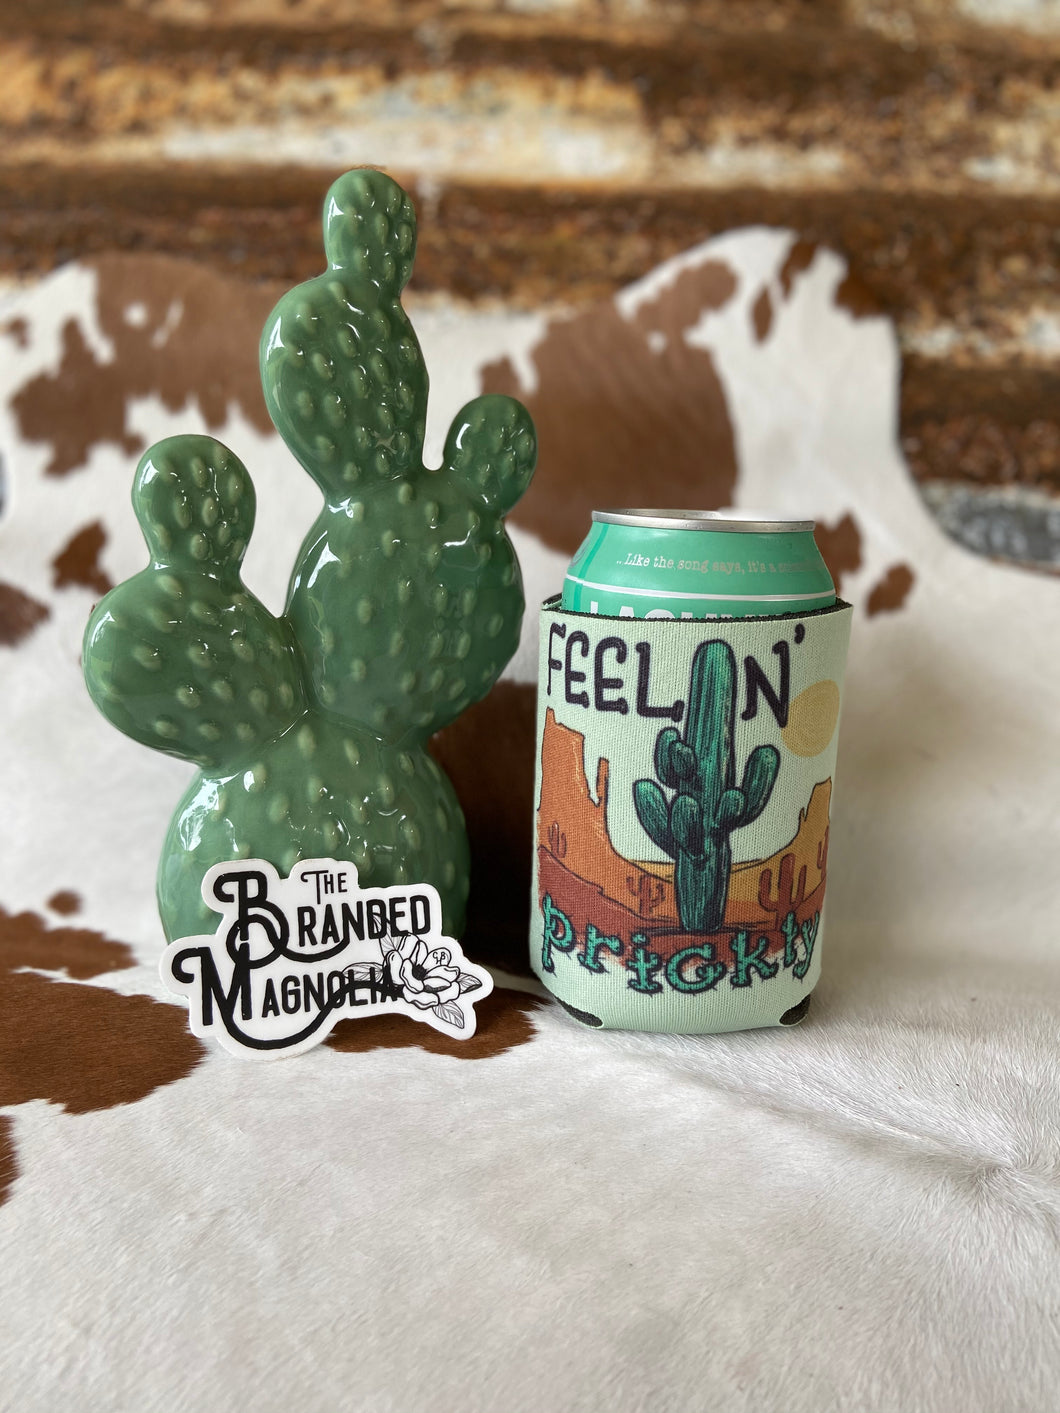 THE FEELIN' PRICKLY KOOZIE